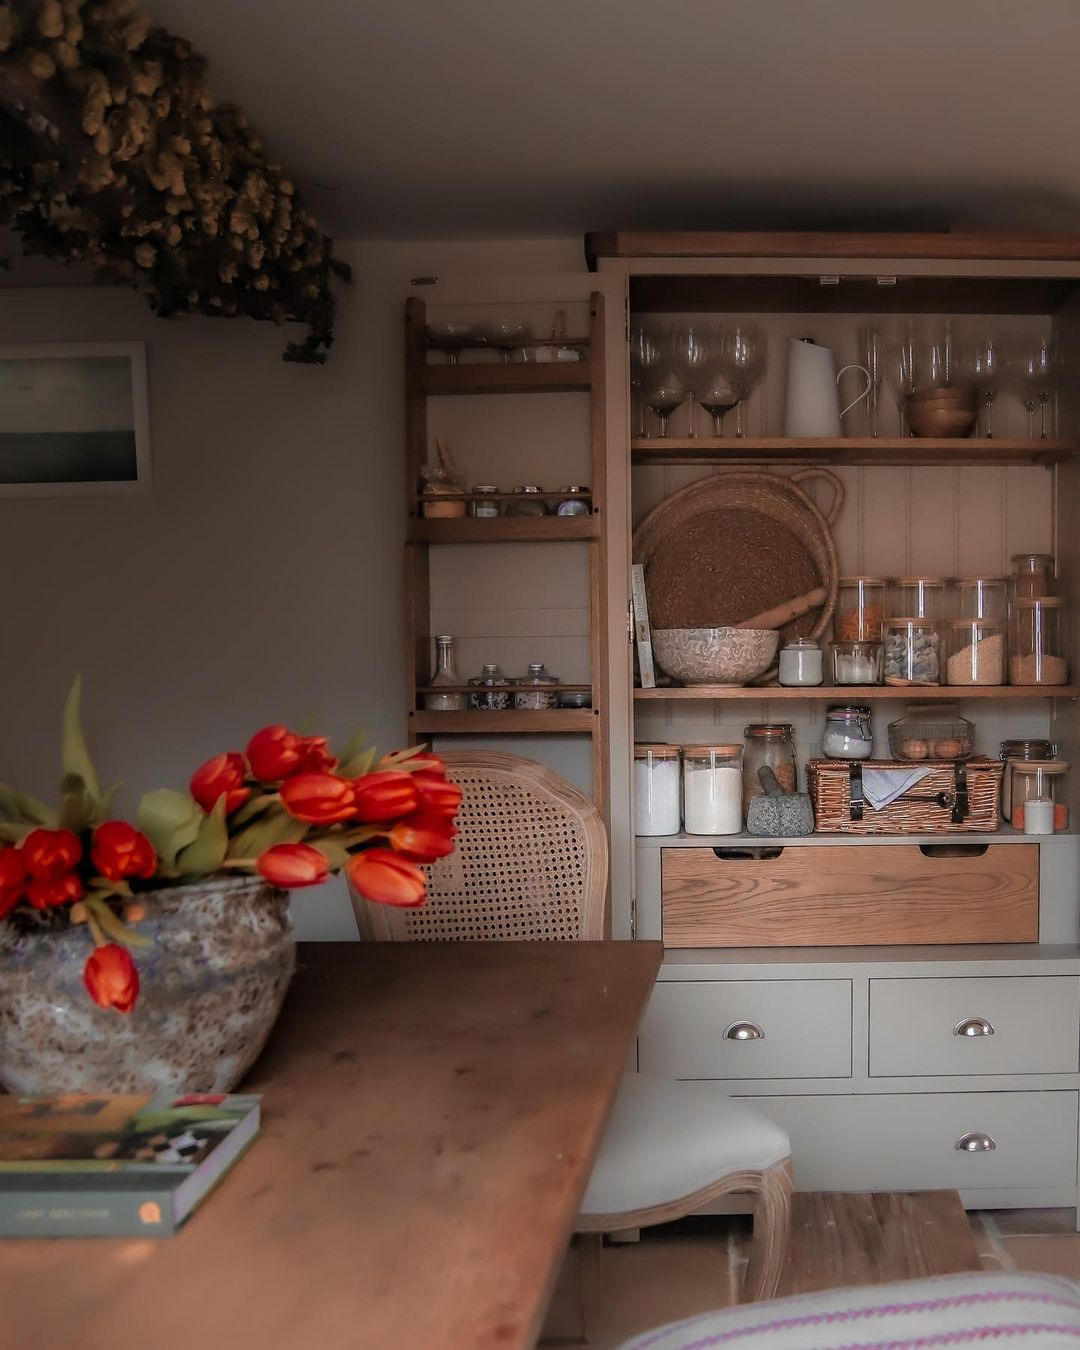 Our Lundy Stone kitchen larder offers ample storage space in Emma's cottage kitchen